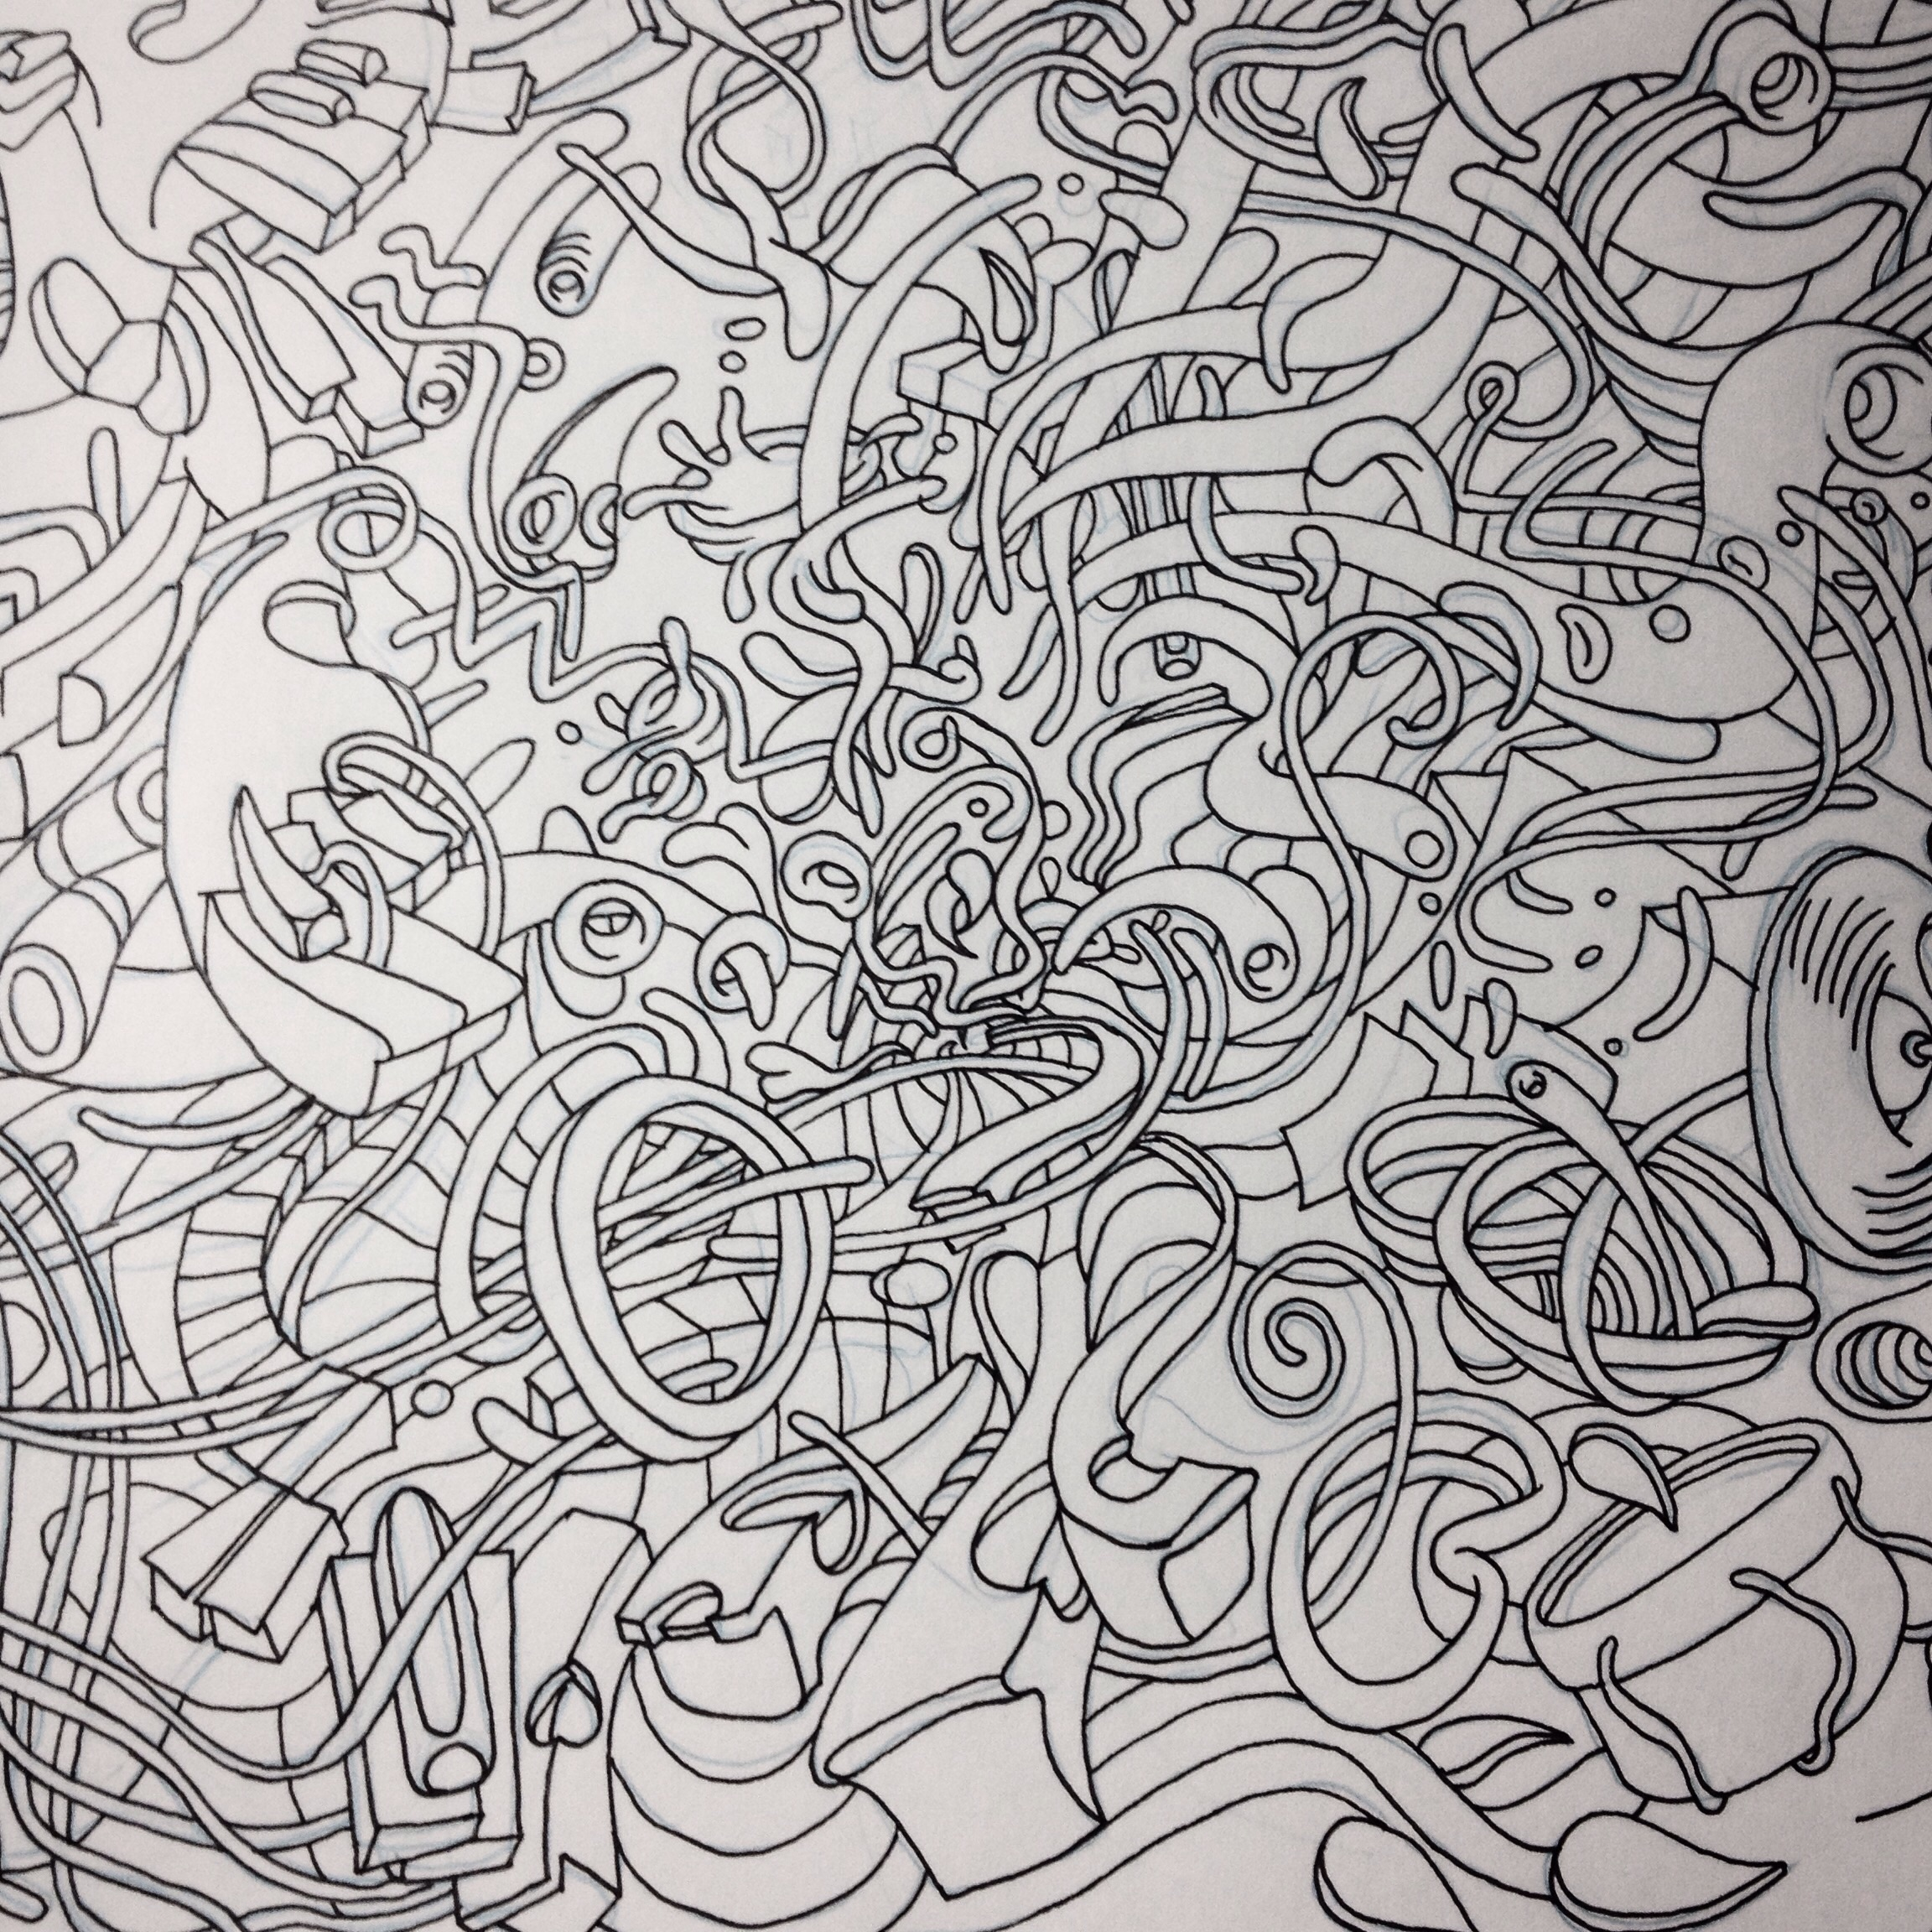 Needs color